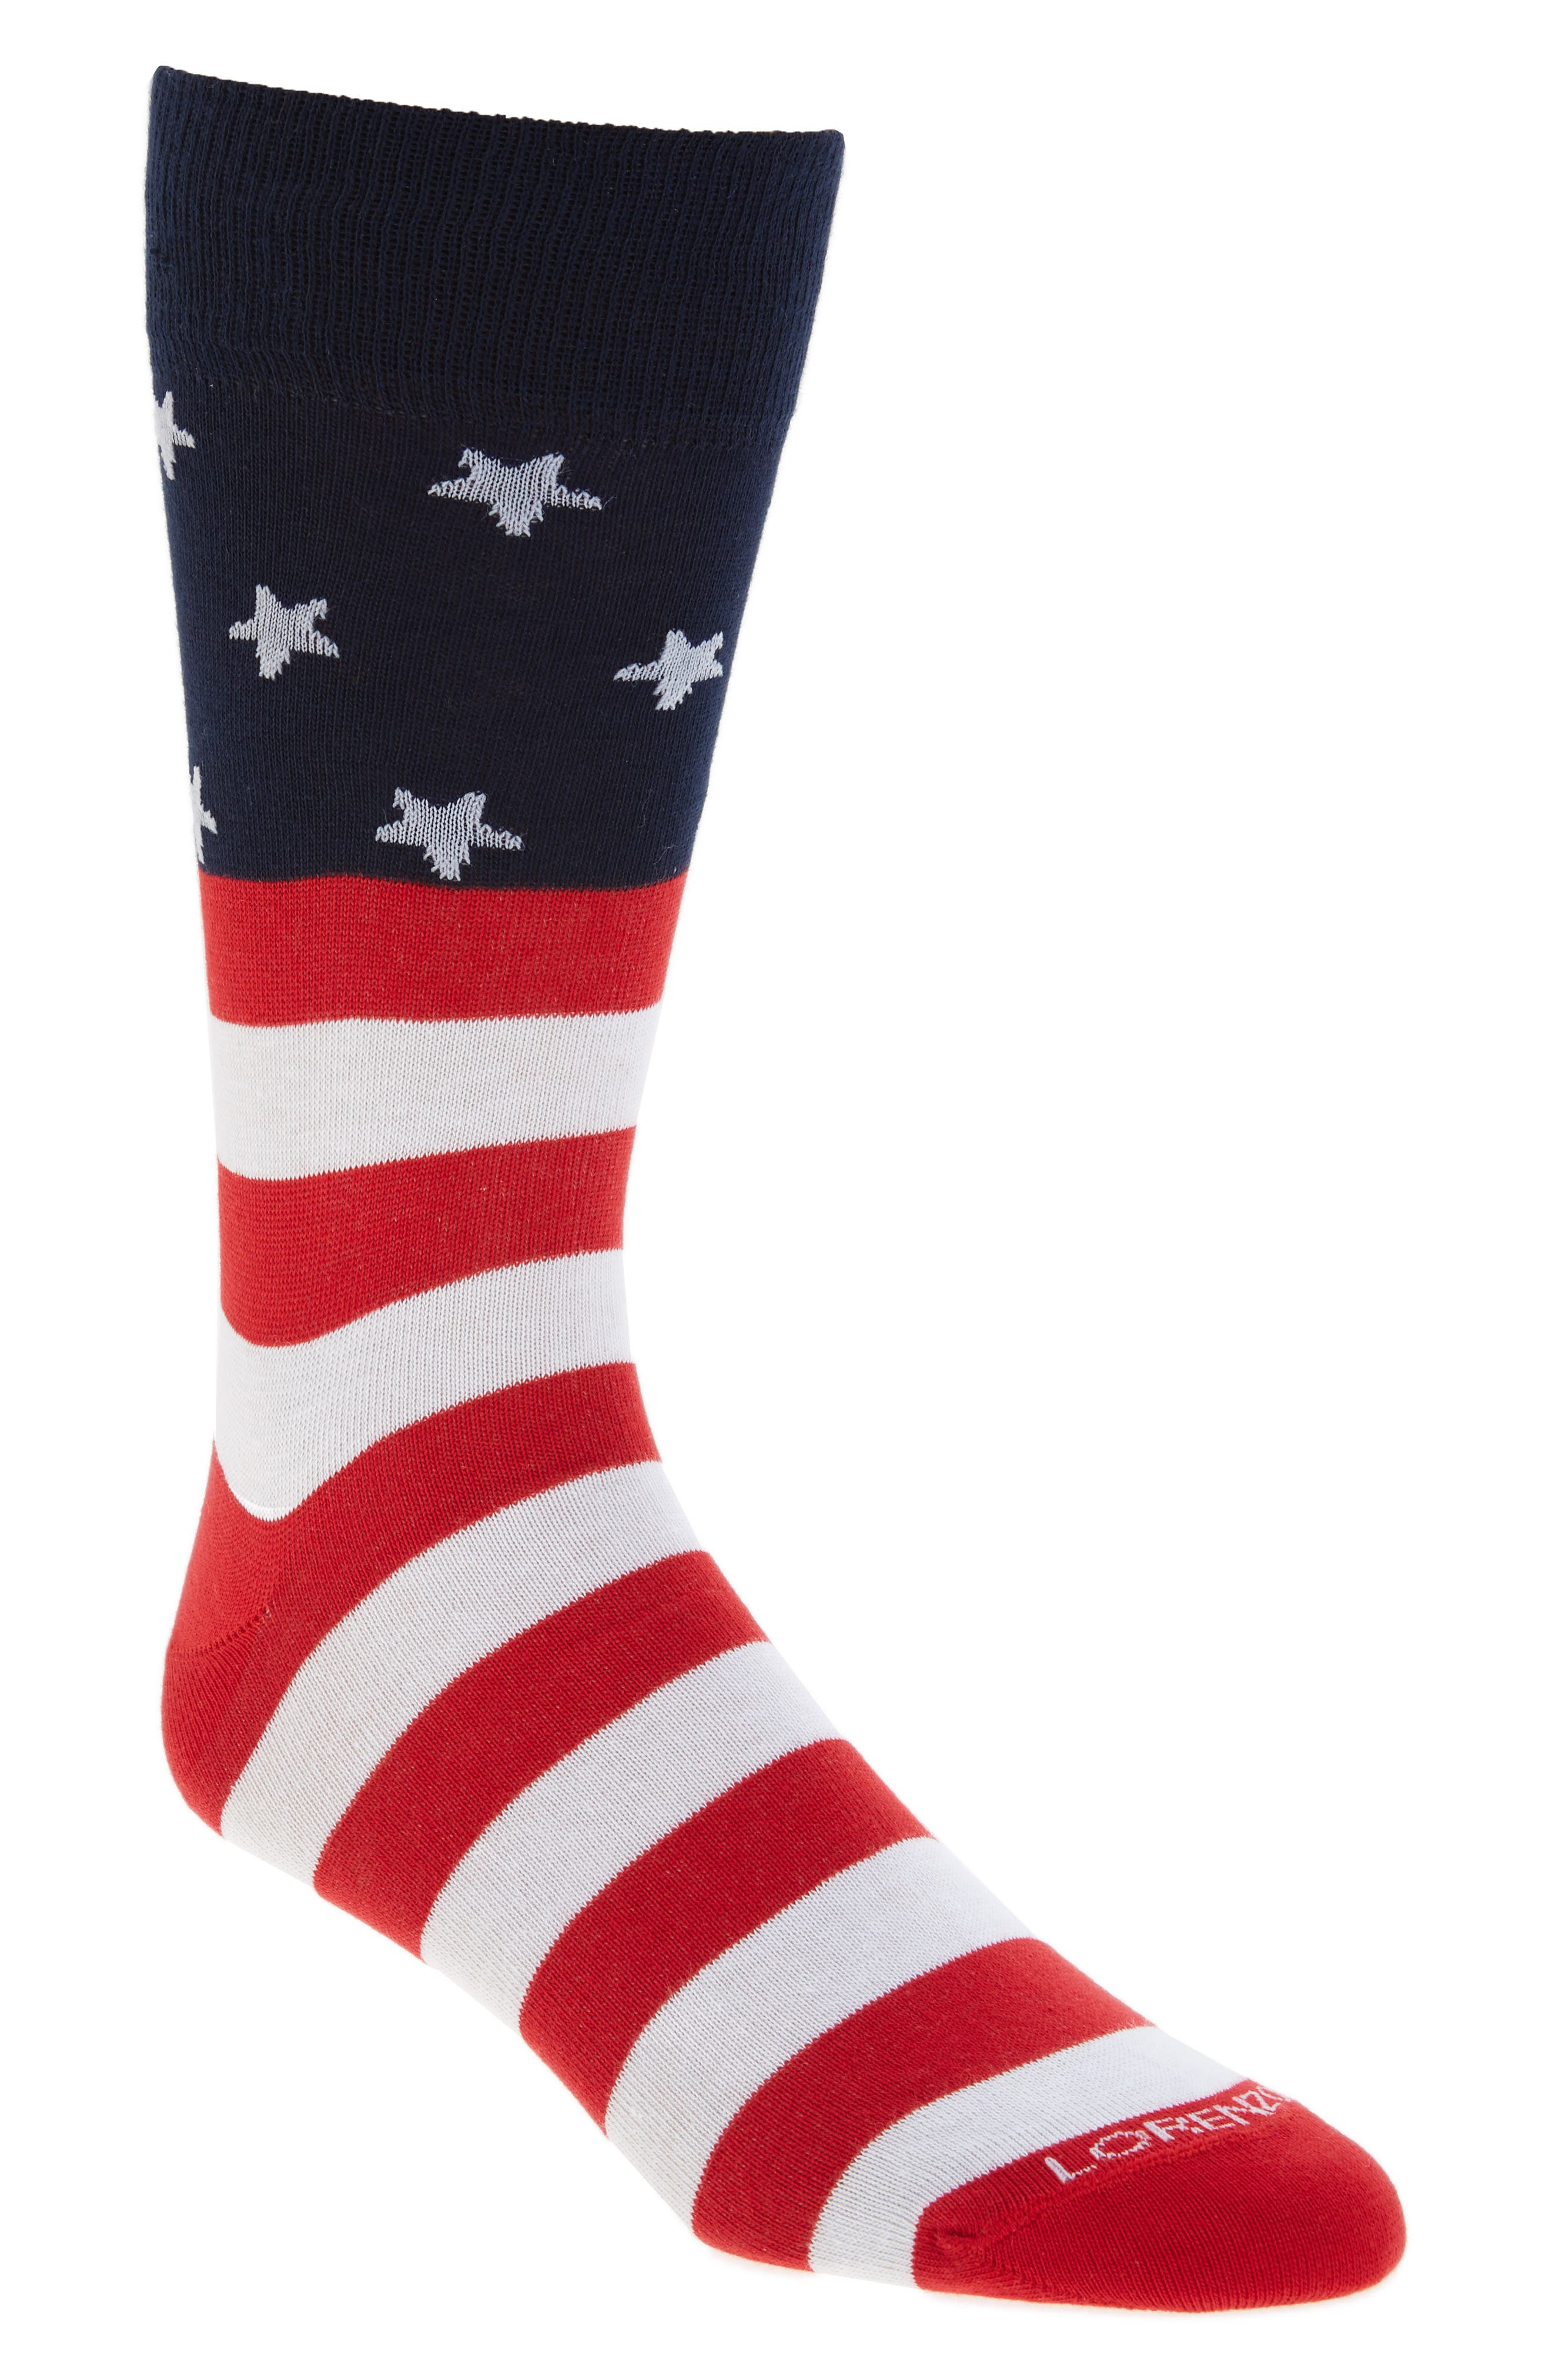 Main Image - Lorenzo Uomo Americana Crew Socks (3 for $30)